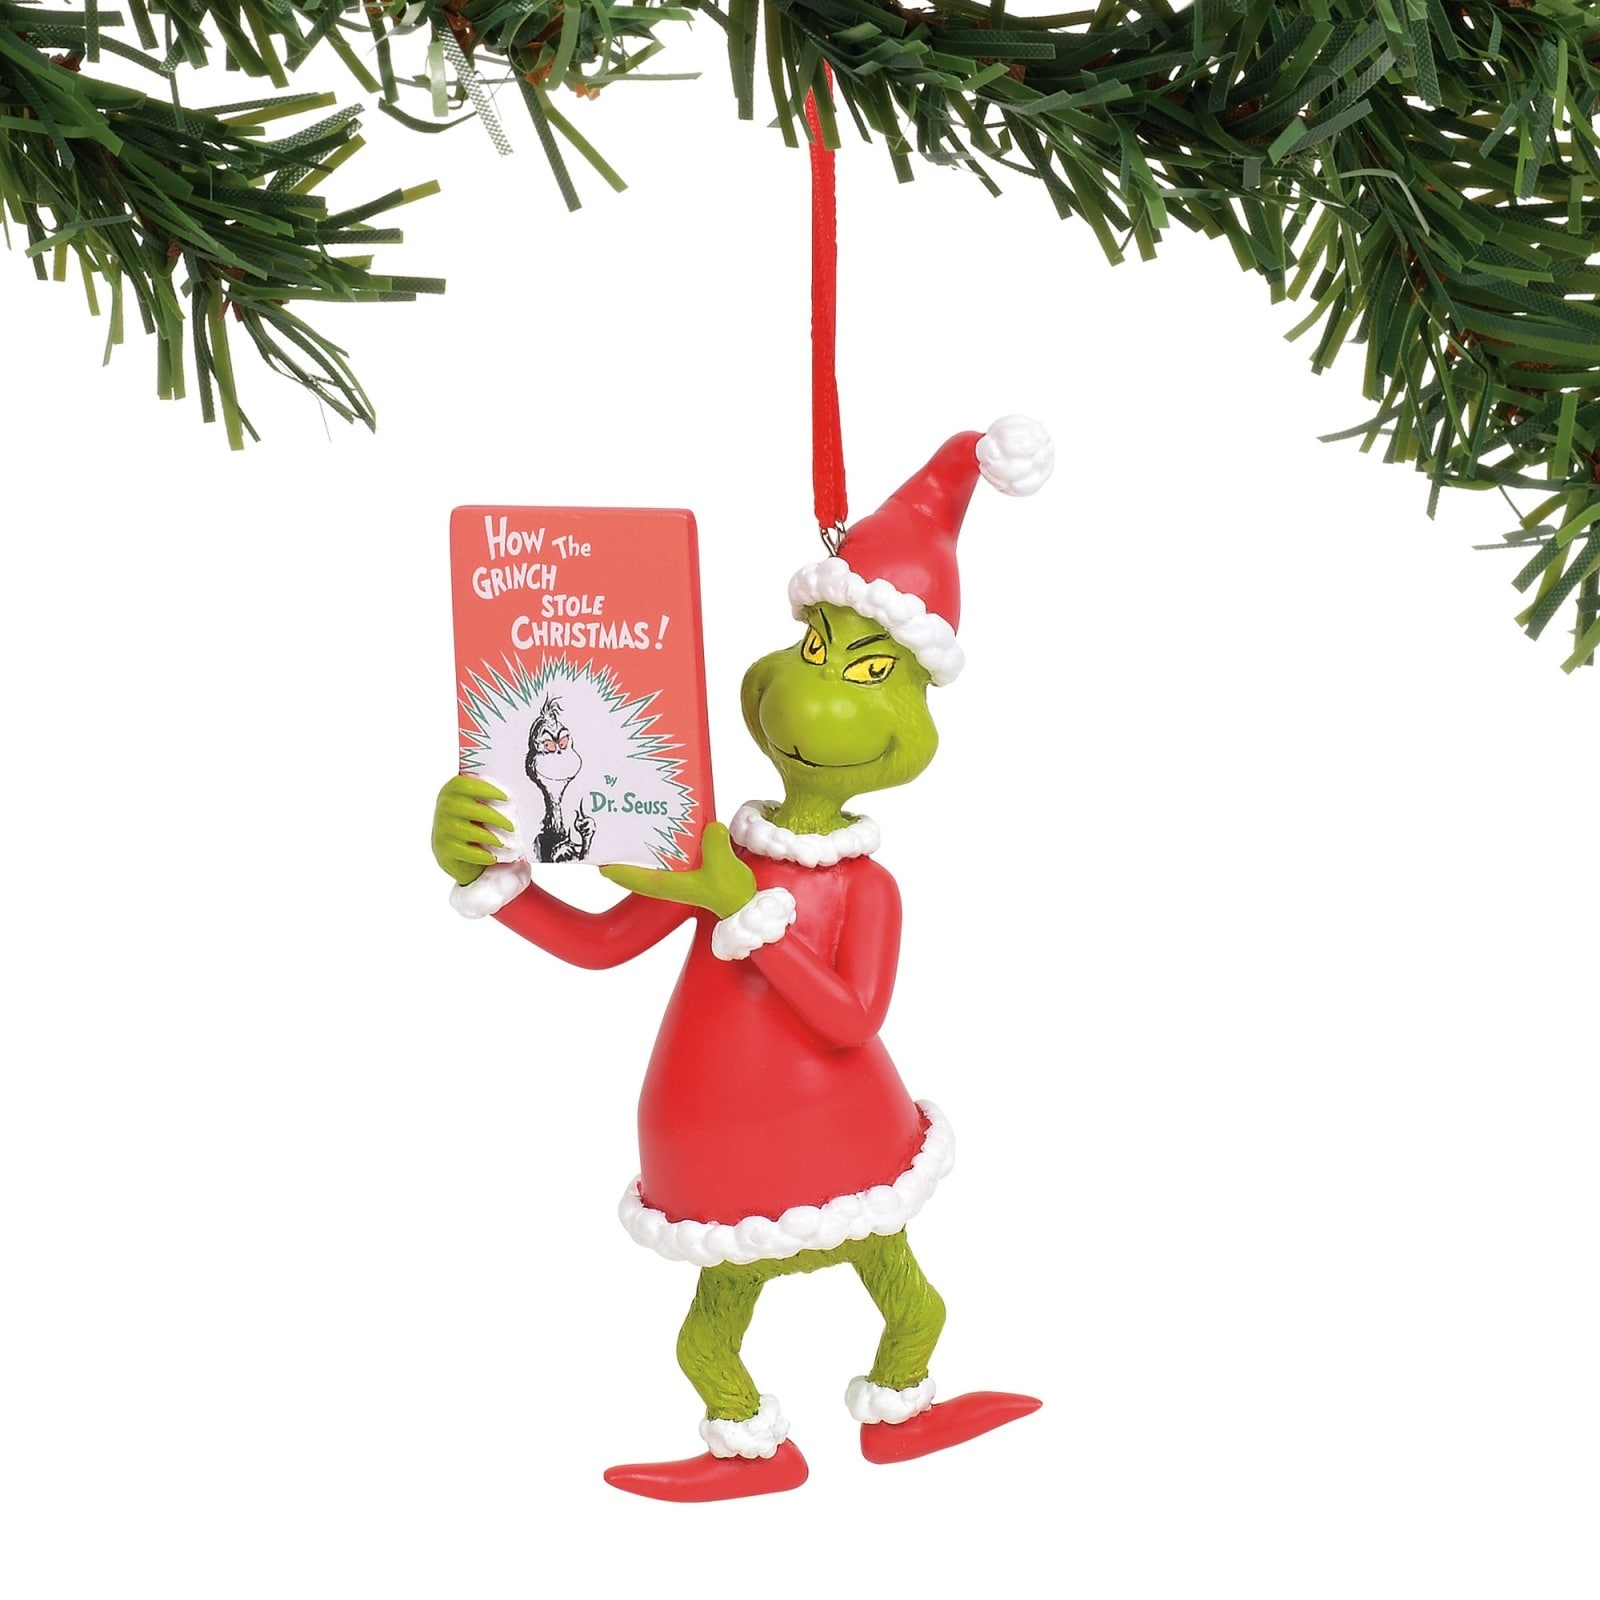 How The Grinch Stole Christmas Book.Grinch Reading How The Grinch Stole Christmas Book Holiday Ornament